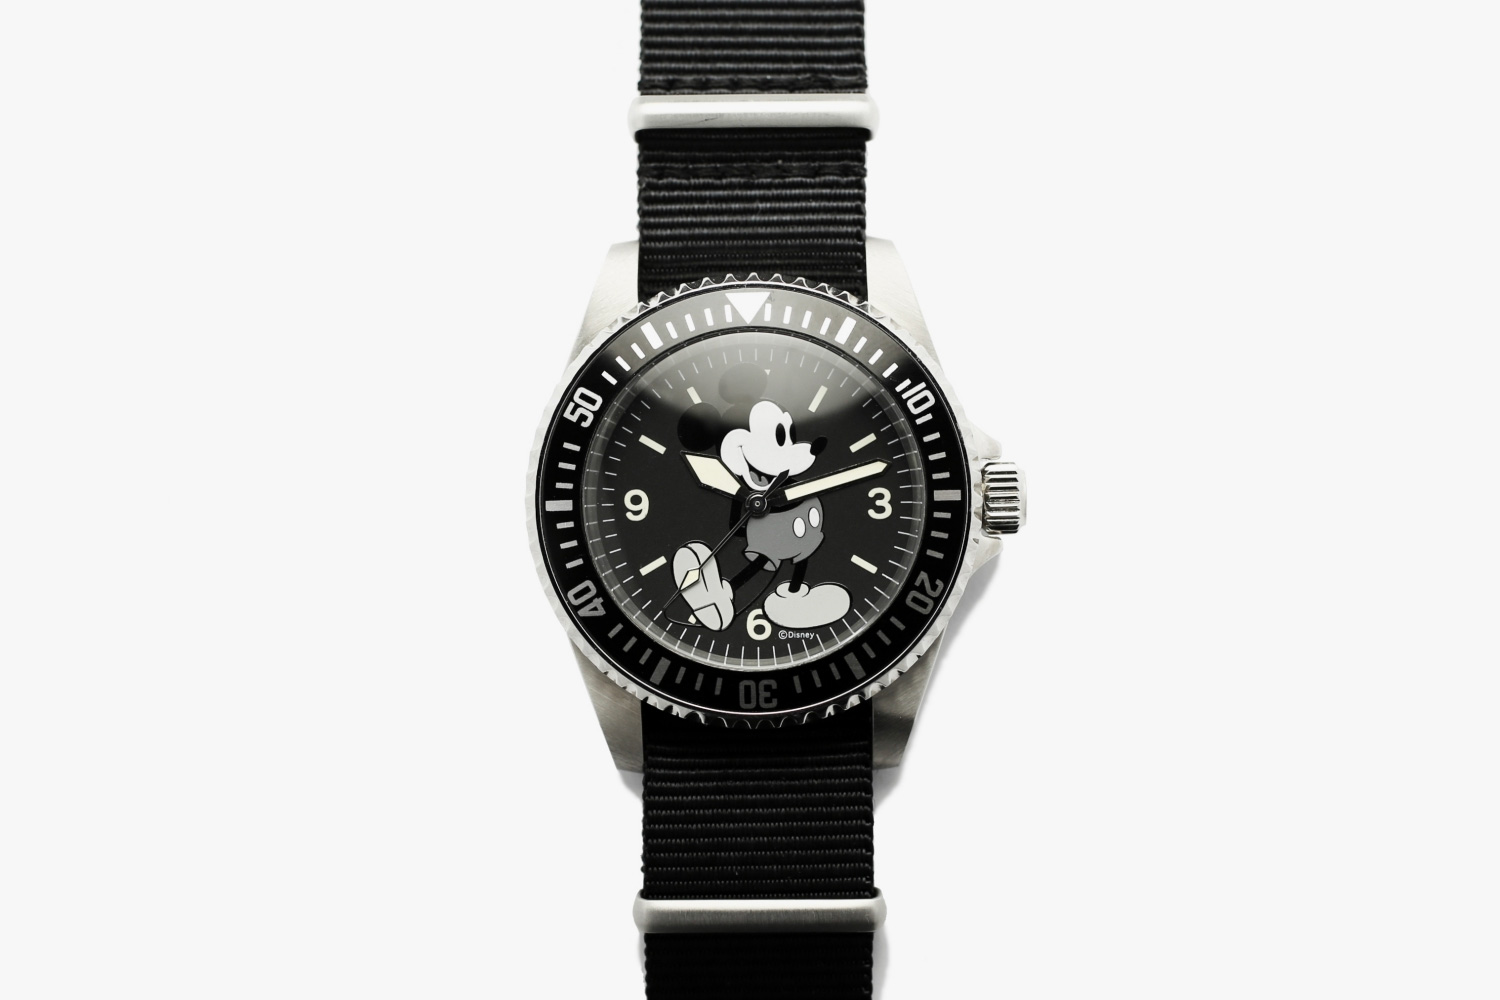 Jam Home Made x BOUNTY HUNTER Mickey Mouse Watch price collaboration purchase accessories mens gift